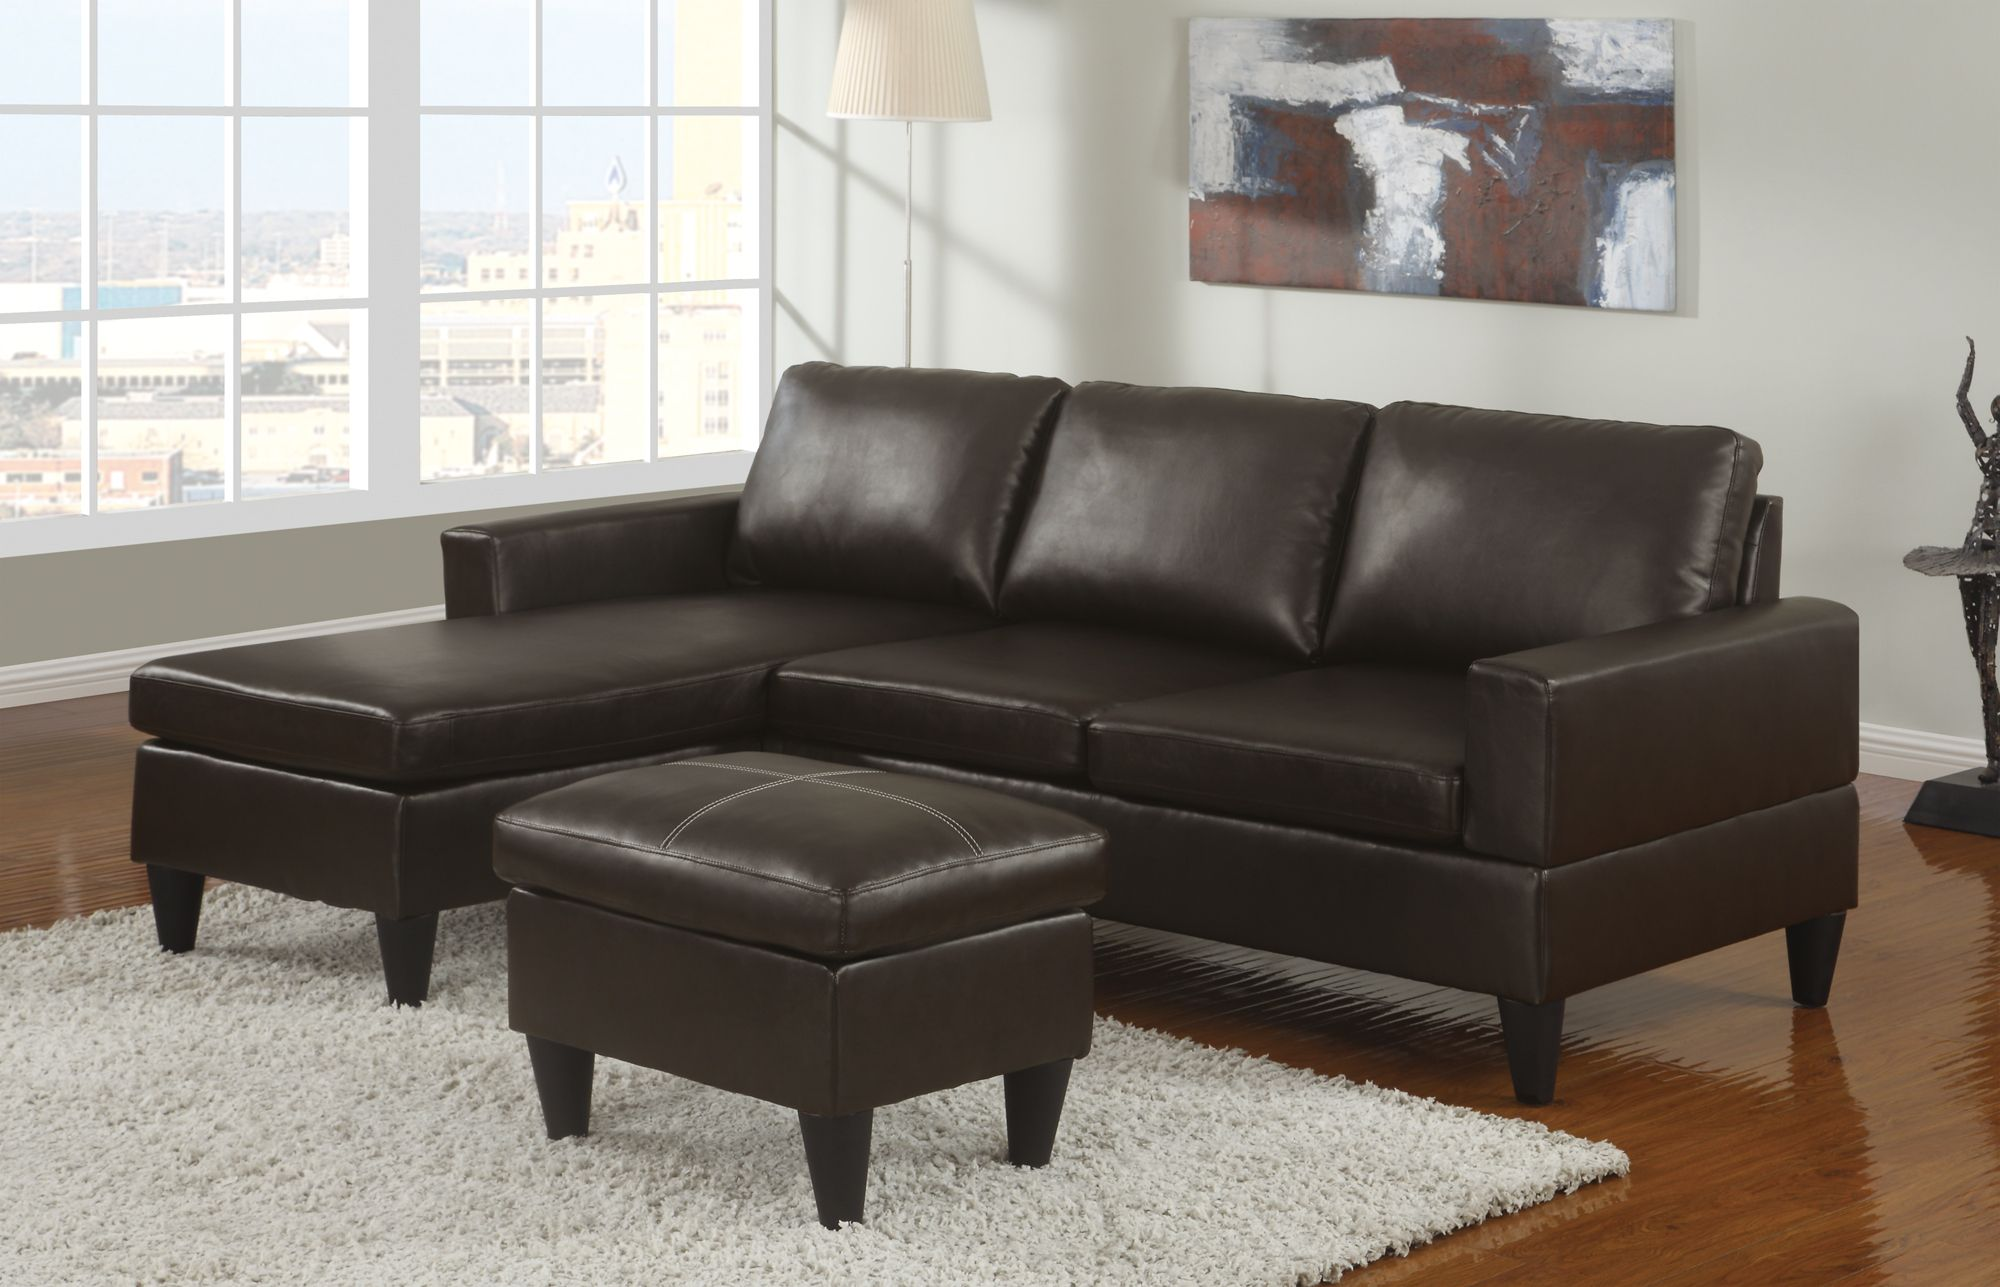 Sausalito Espresso Leather Small Sectional Sofa Set by Urban Cali